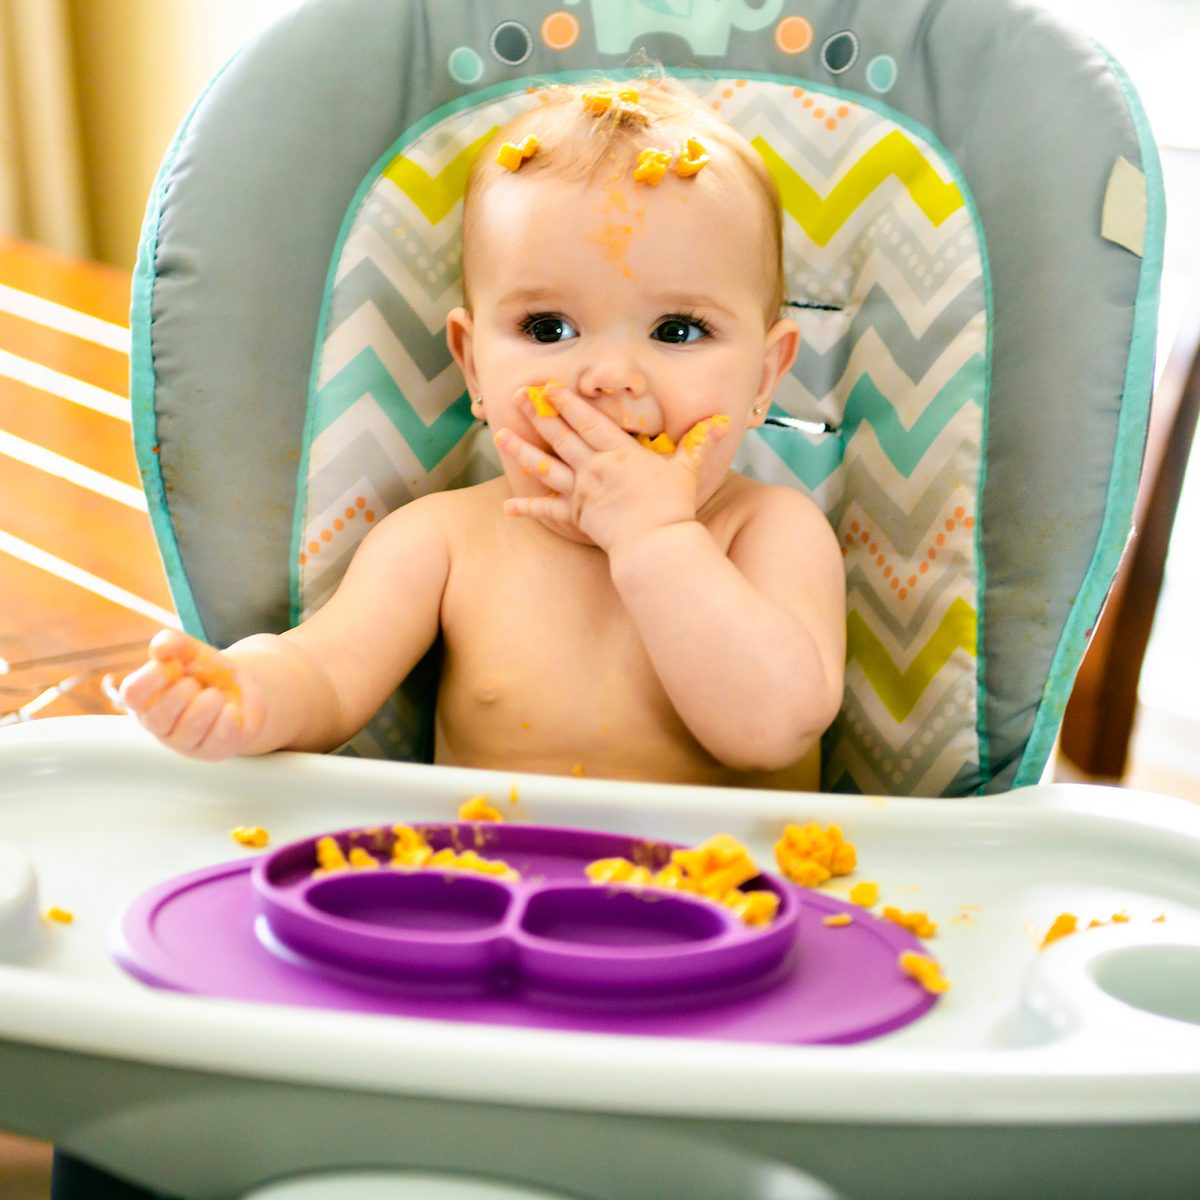 Little baby eating her pasta and making a mess